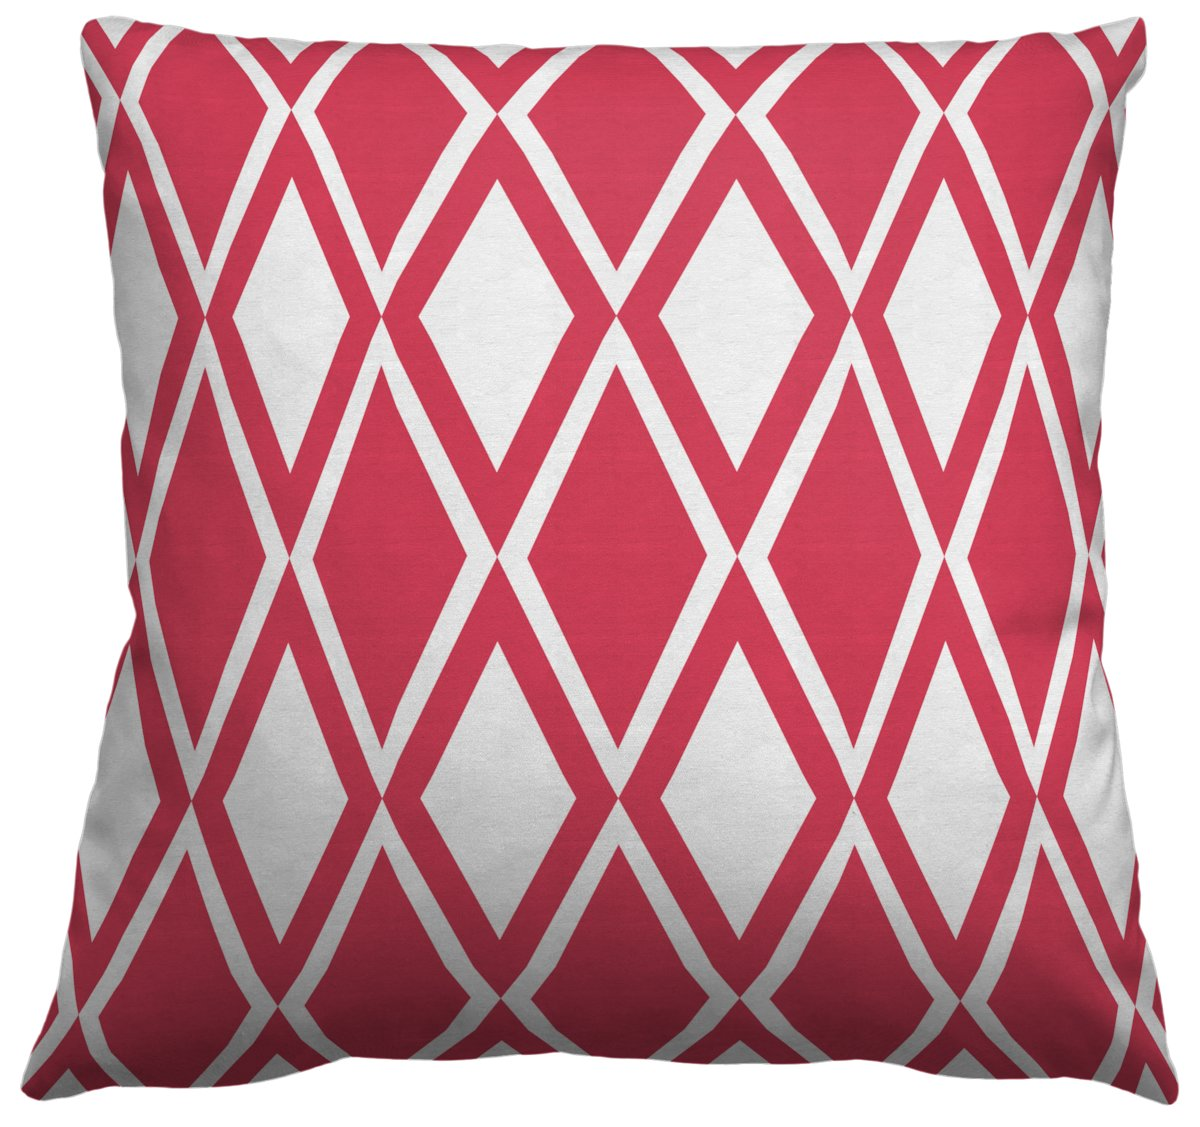 AphroChic - Kuba Pillow in Coral & White